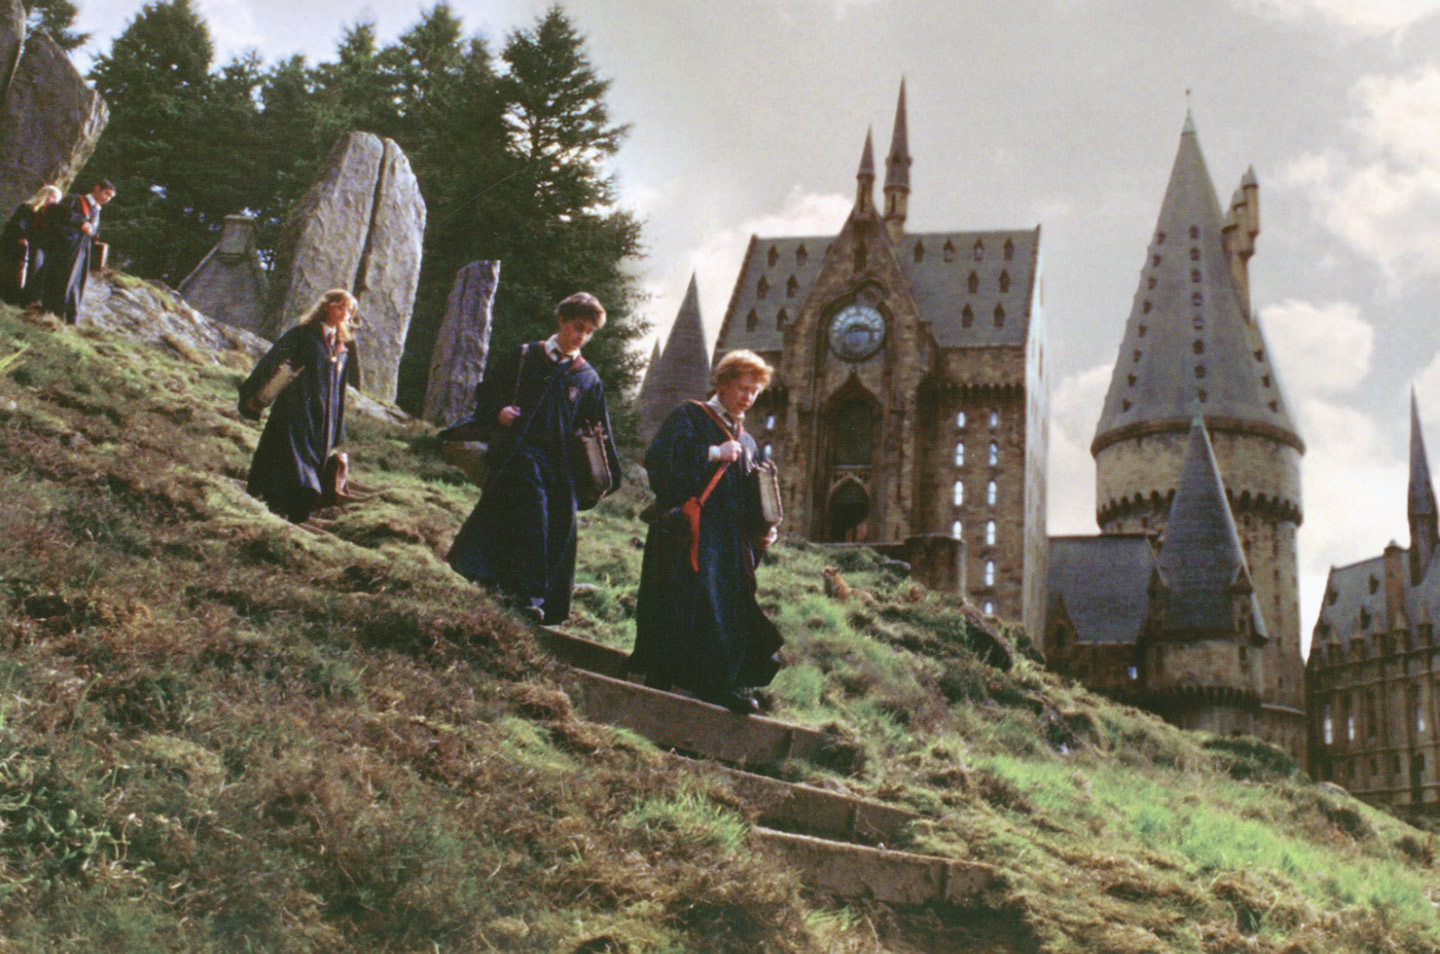 An American version of Hogwarts? All of the yes!